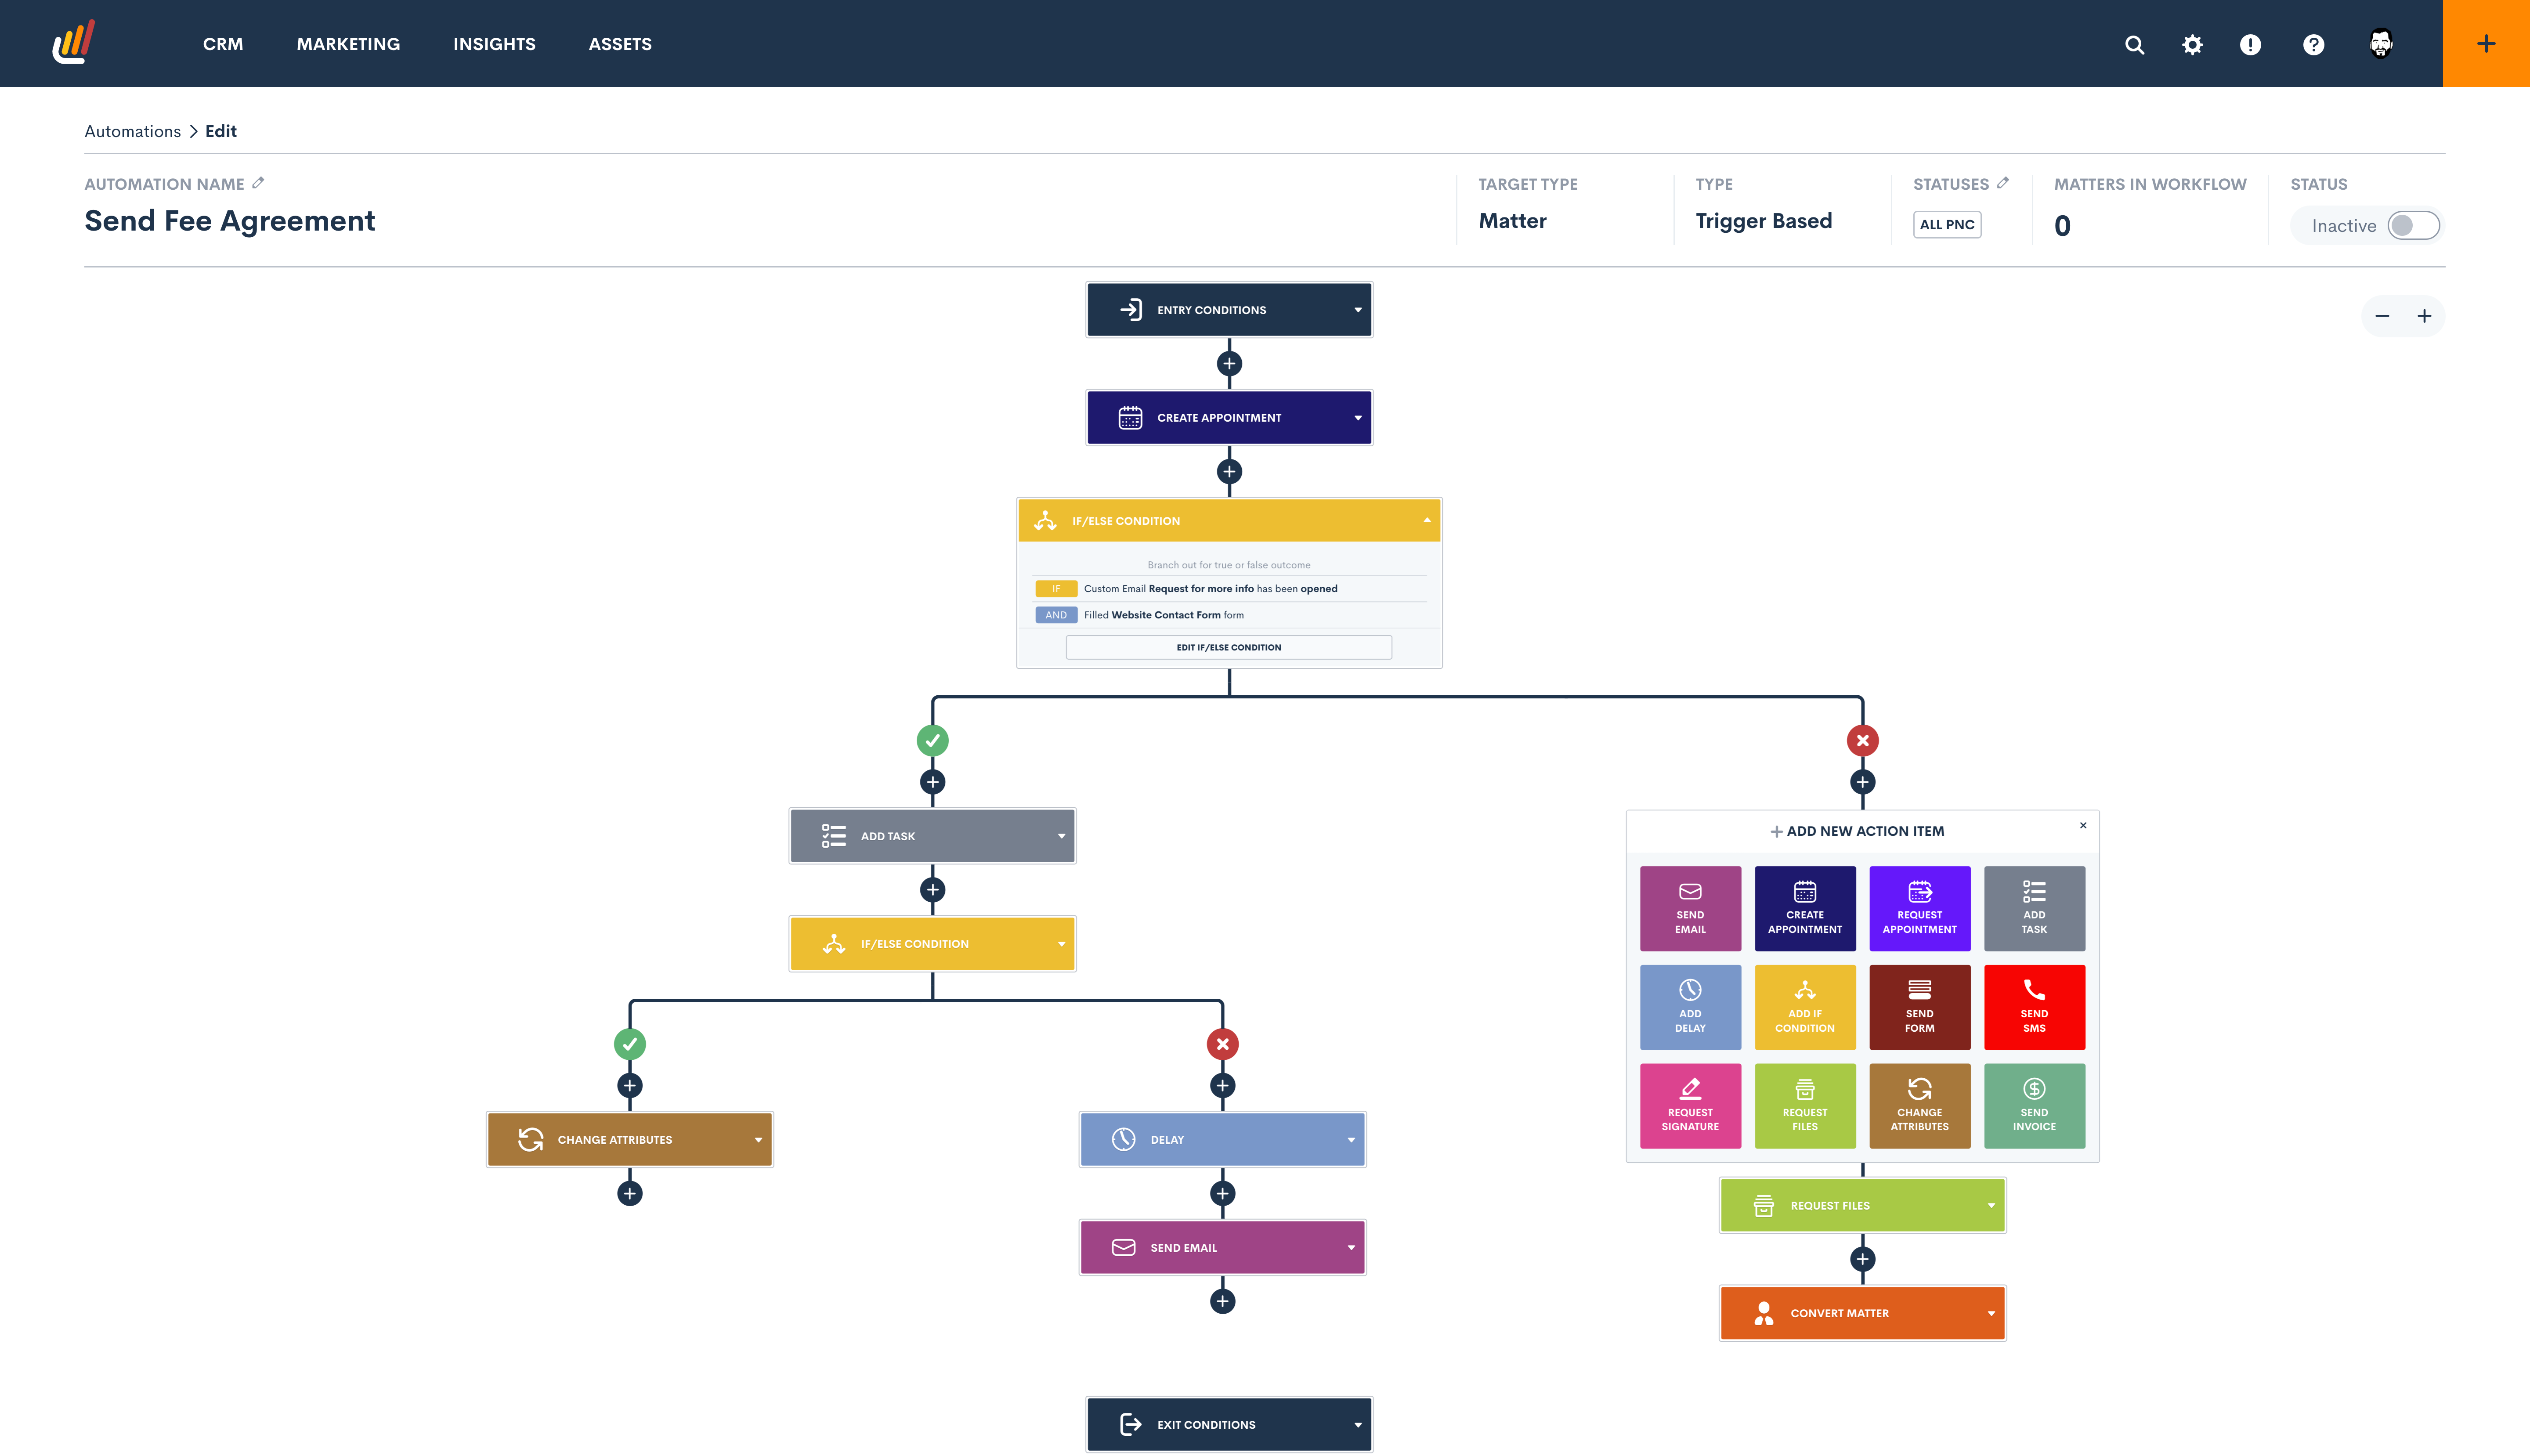 Lawmatics Software - The automation engine is an intuitive, visual interface that allows user to create customized workflows by simply connecting the system actions you want to automate (e.g. email, SMS, appointment request, send document). No code needed!